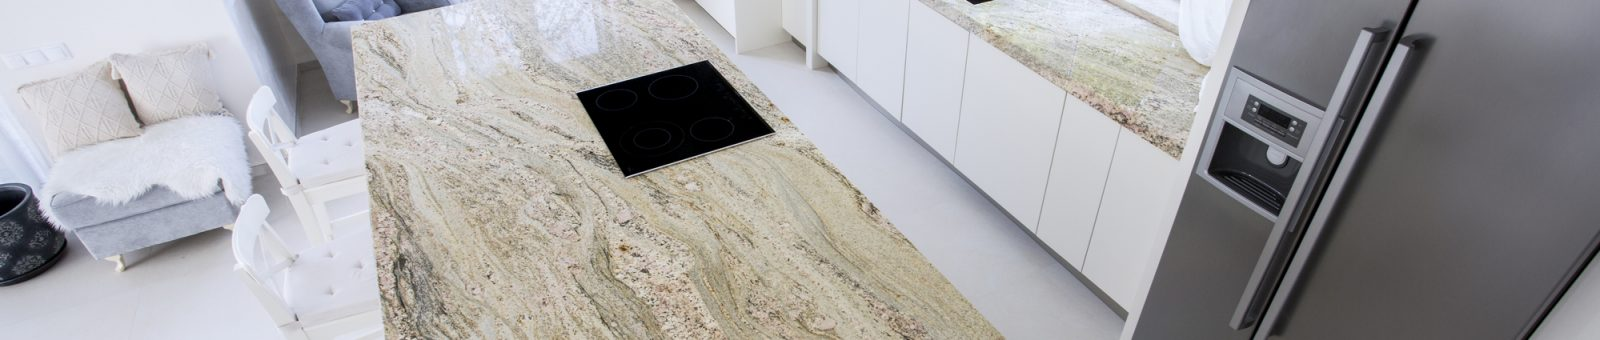 Countertops Protects The Surface And Prevents Damage